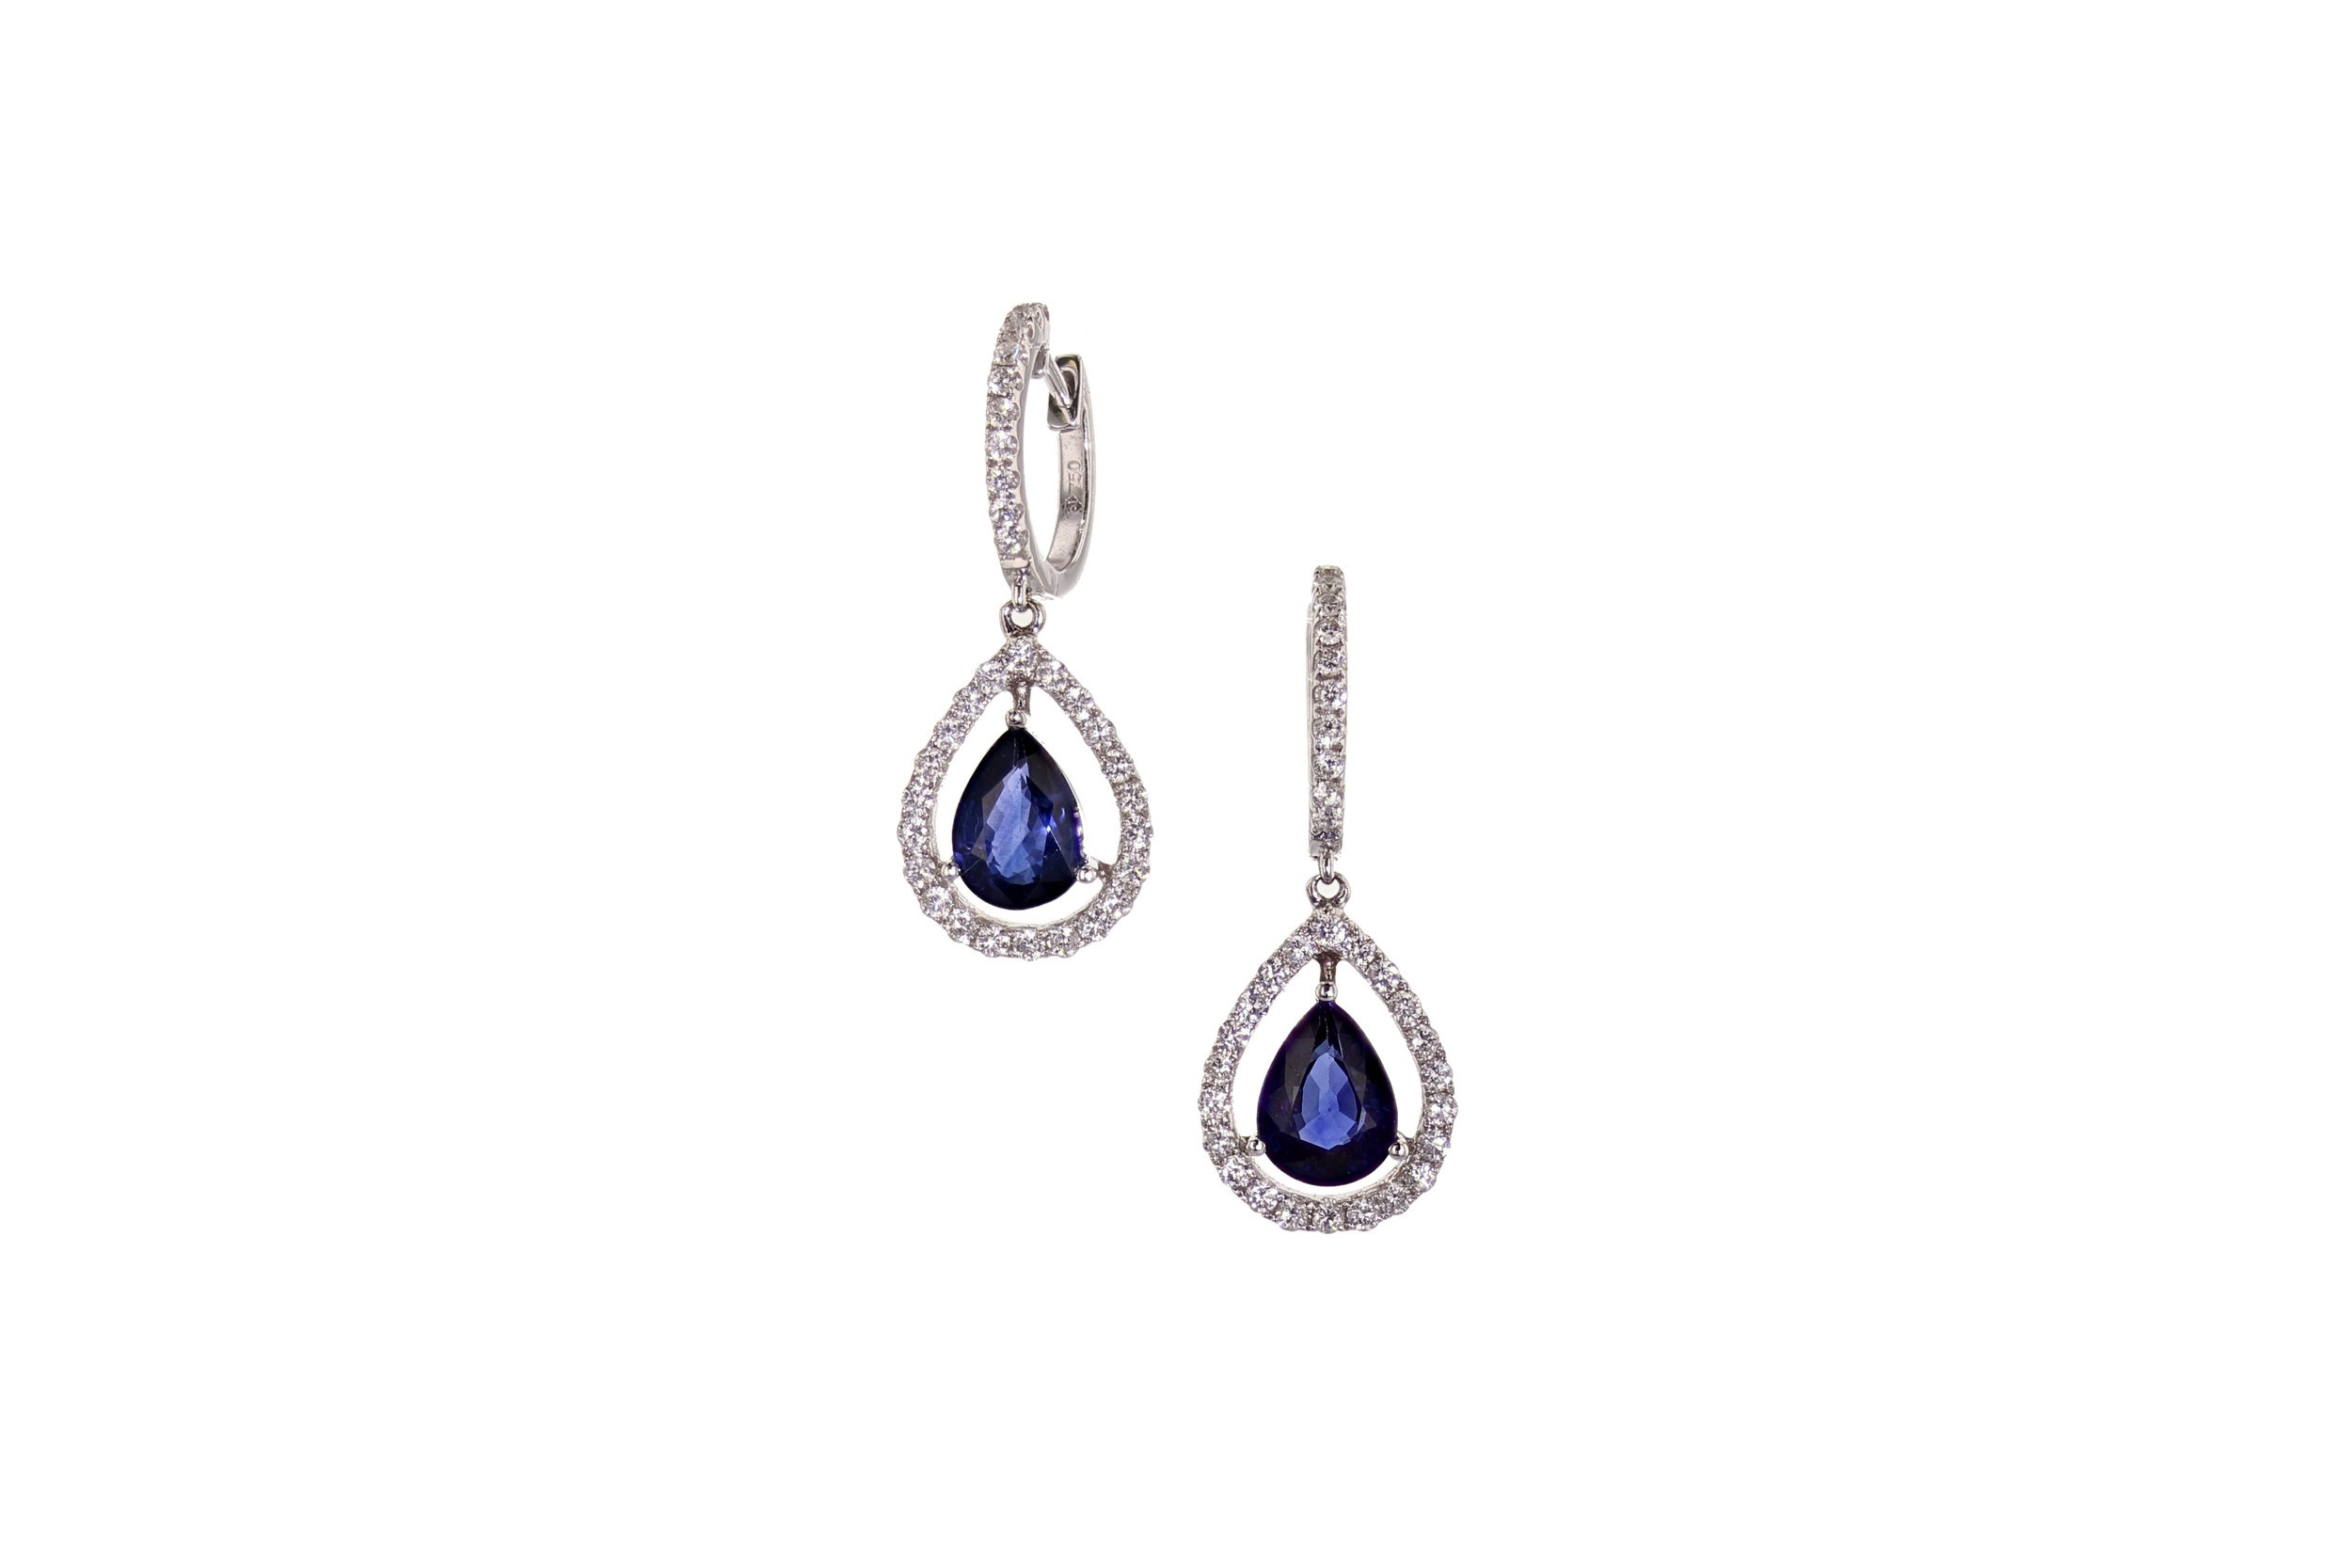 14 w/g Sapphire & Diamond earrings. $9590